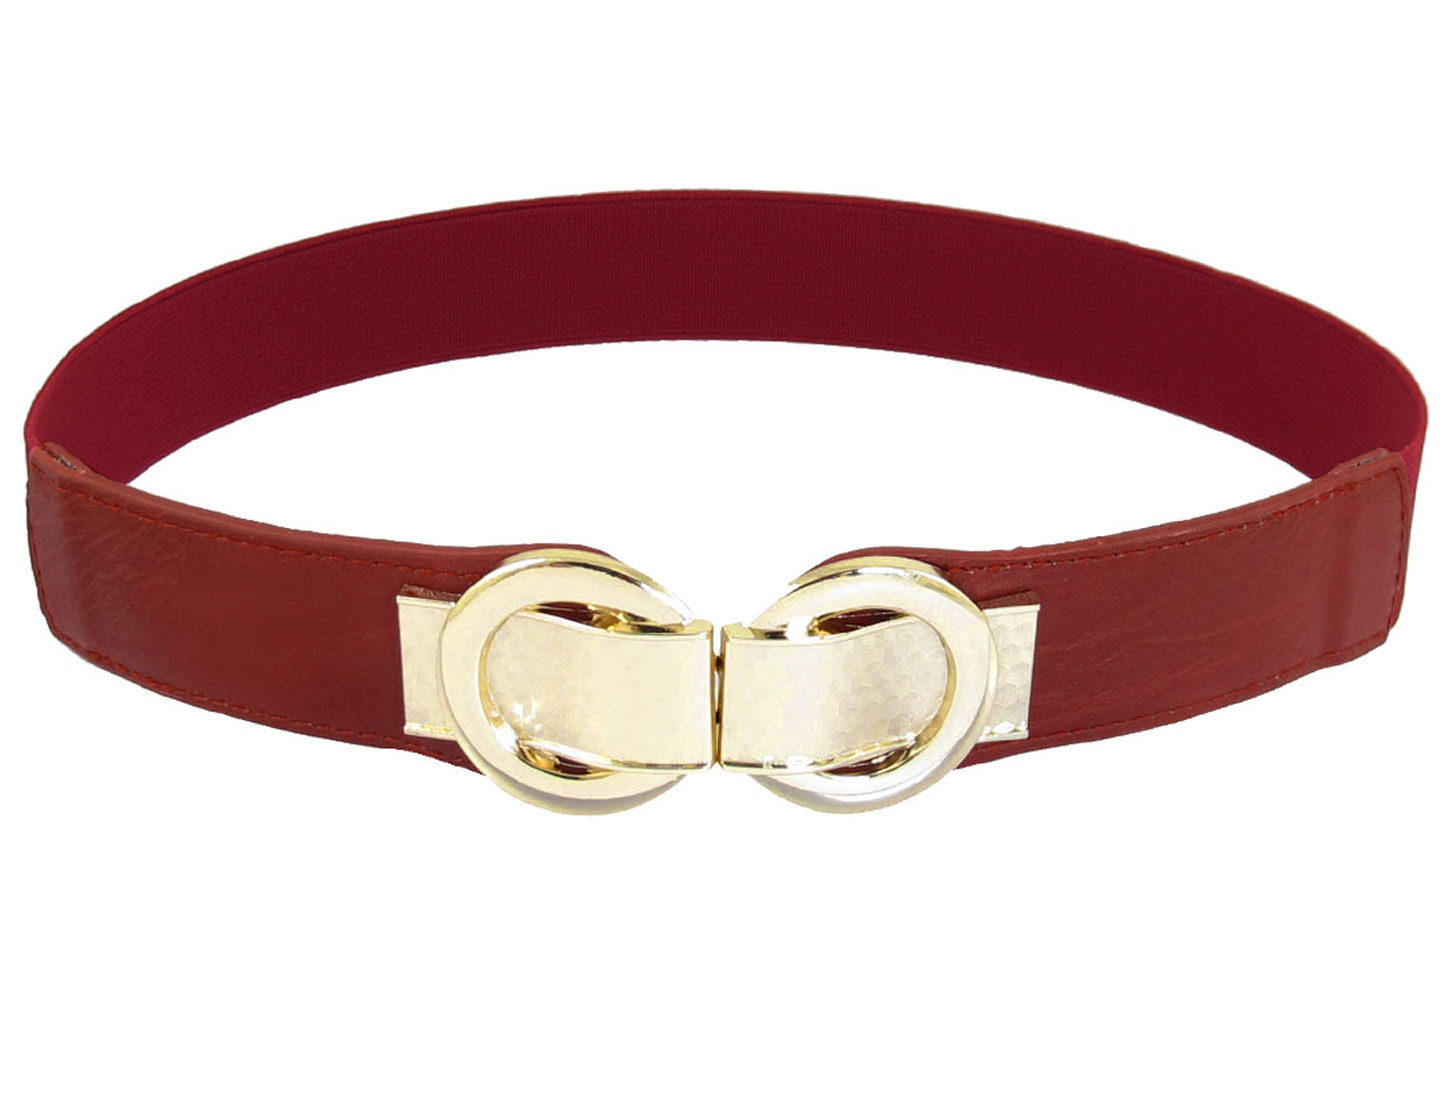 Red Faux Leather Metal Interlock Buckle Elastic Cinch Belt Band